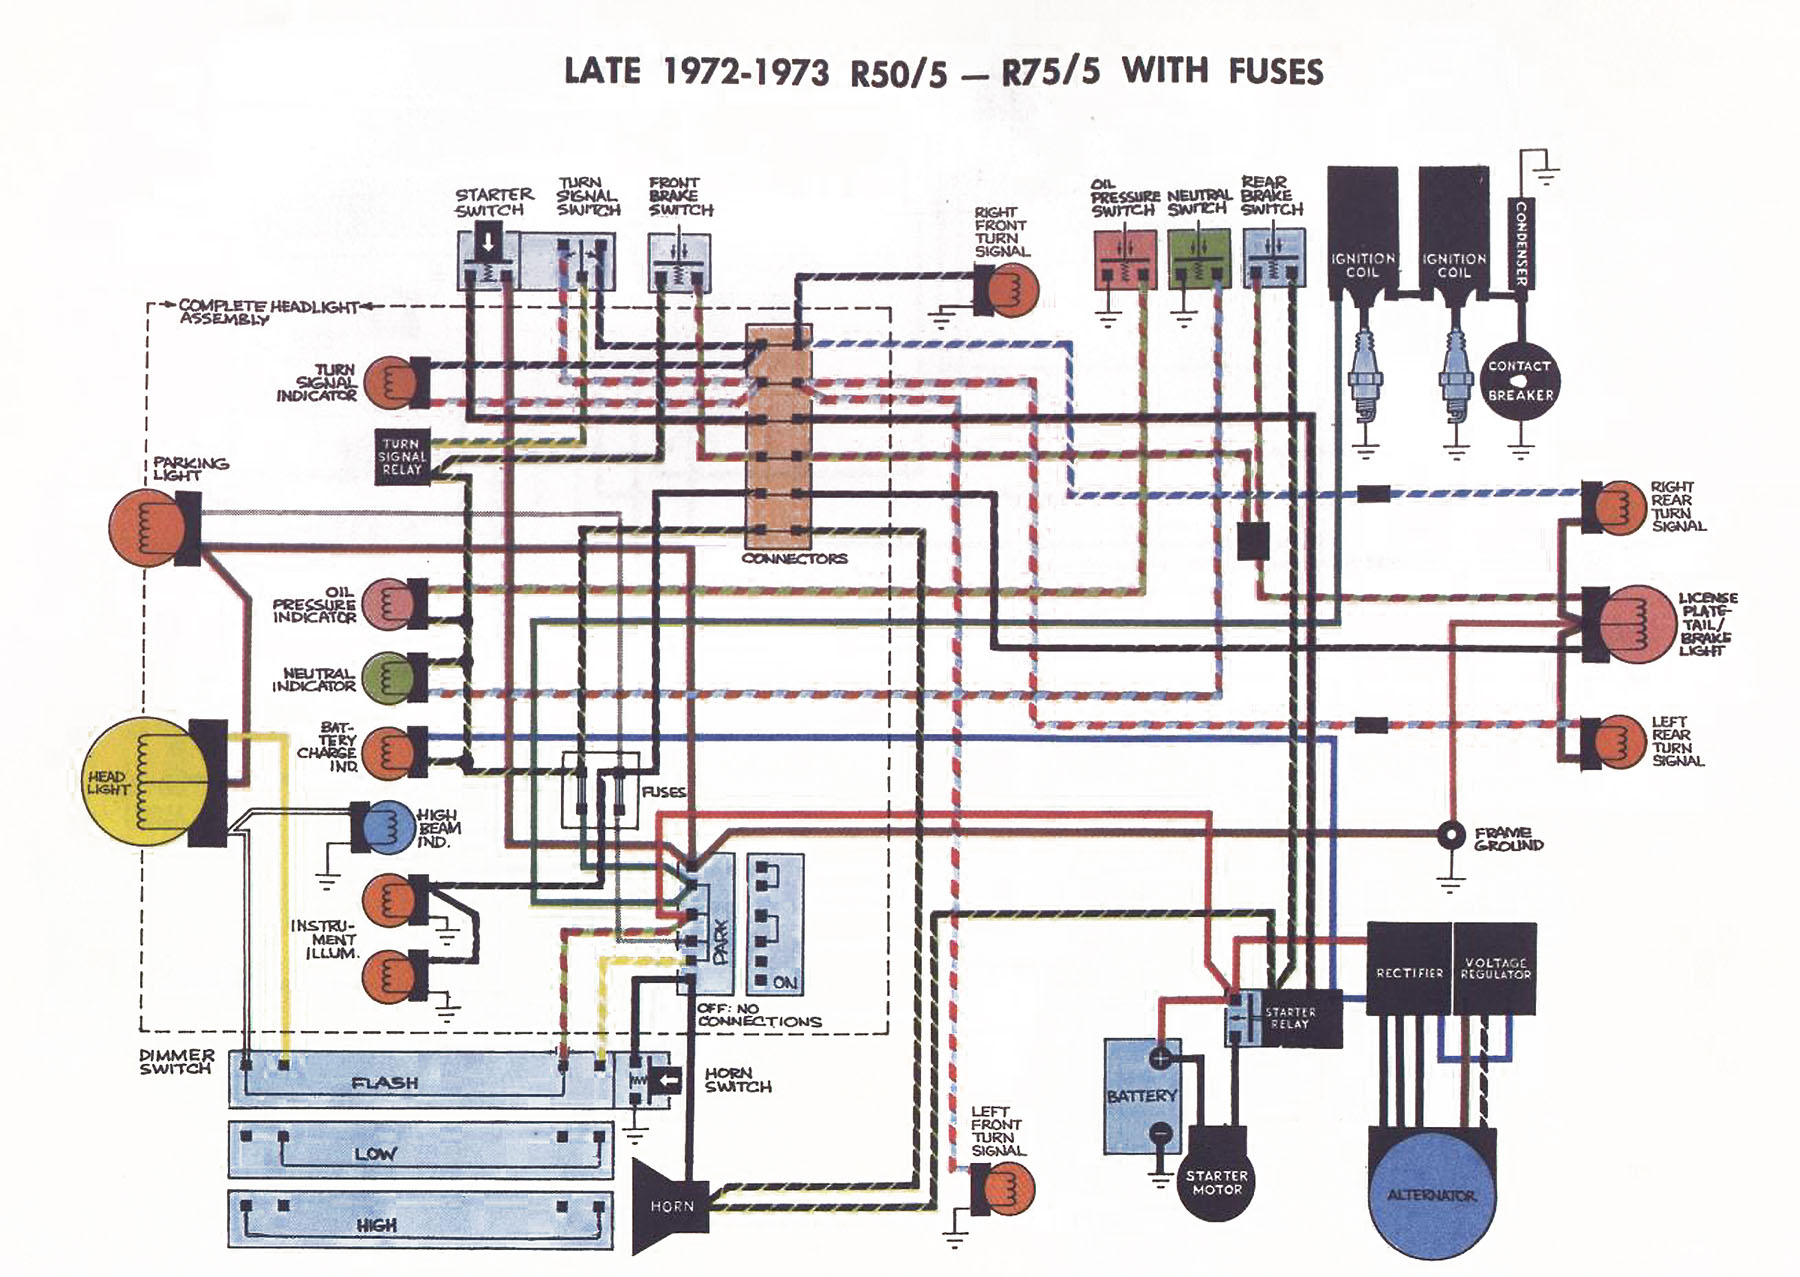 Sensational Bmw R75 Wiring Diagram Wiring Library Wiring Cloud Hisonepsysticxongrecoveryedborg